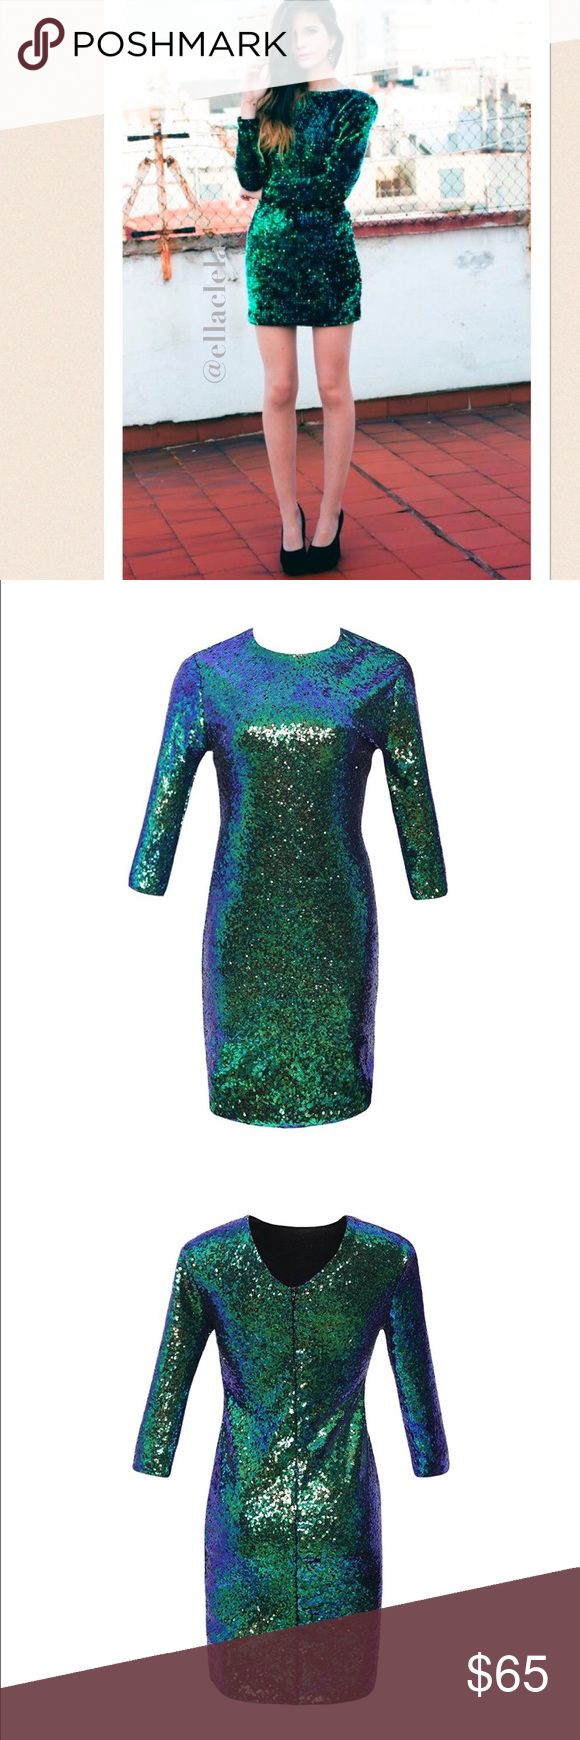 Mermaid Peacock Color Green Sequin Party Dress Brand new. Polyester. Luxurious glimmering sequins ensure a comfortable flattering fit. A dress that will sparkle its way through the night, the perfect party outfit! Browse my closet to see more dresses. Follow me to see new listings. PLEASE CHOOSE ONE SIZE UP. Dresses Long Sleeve